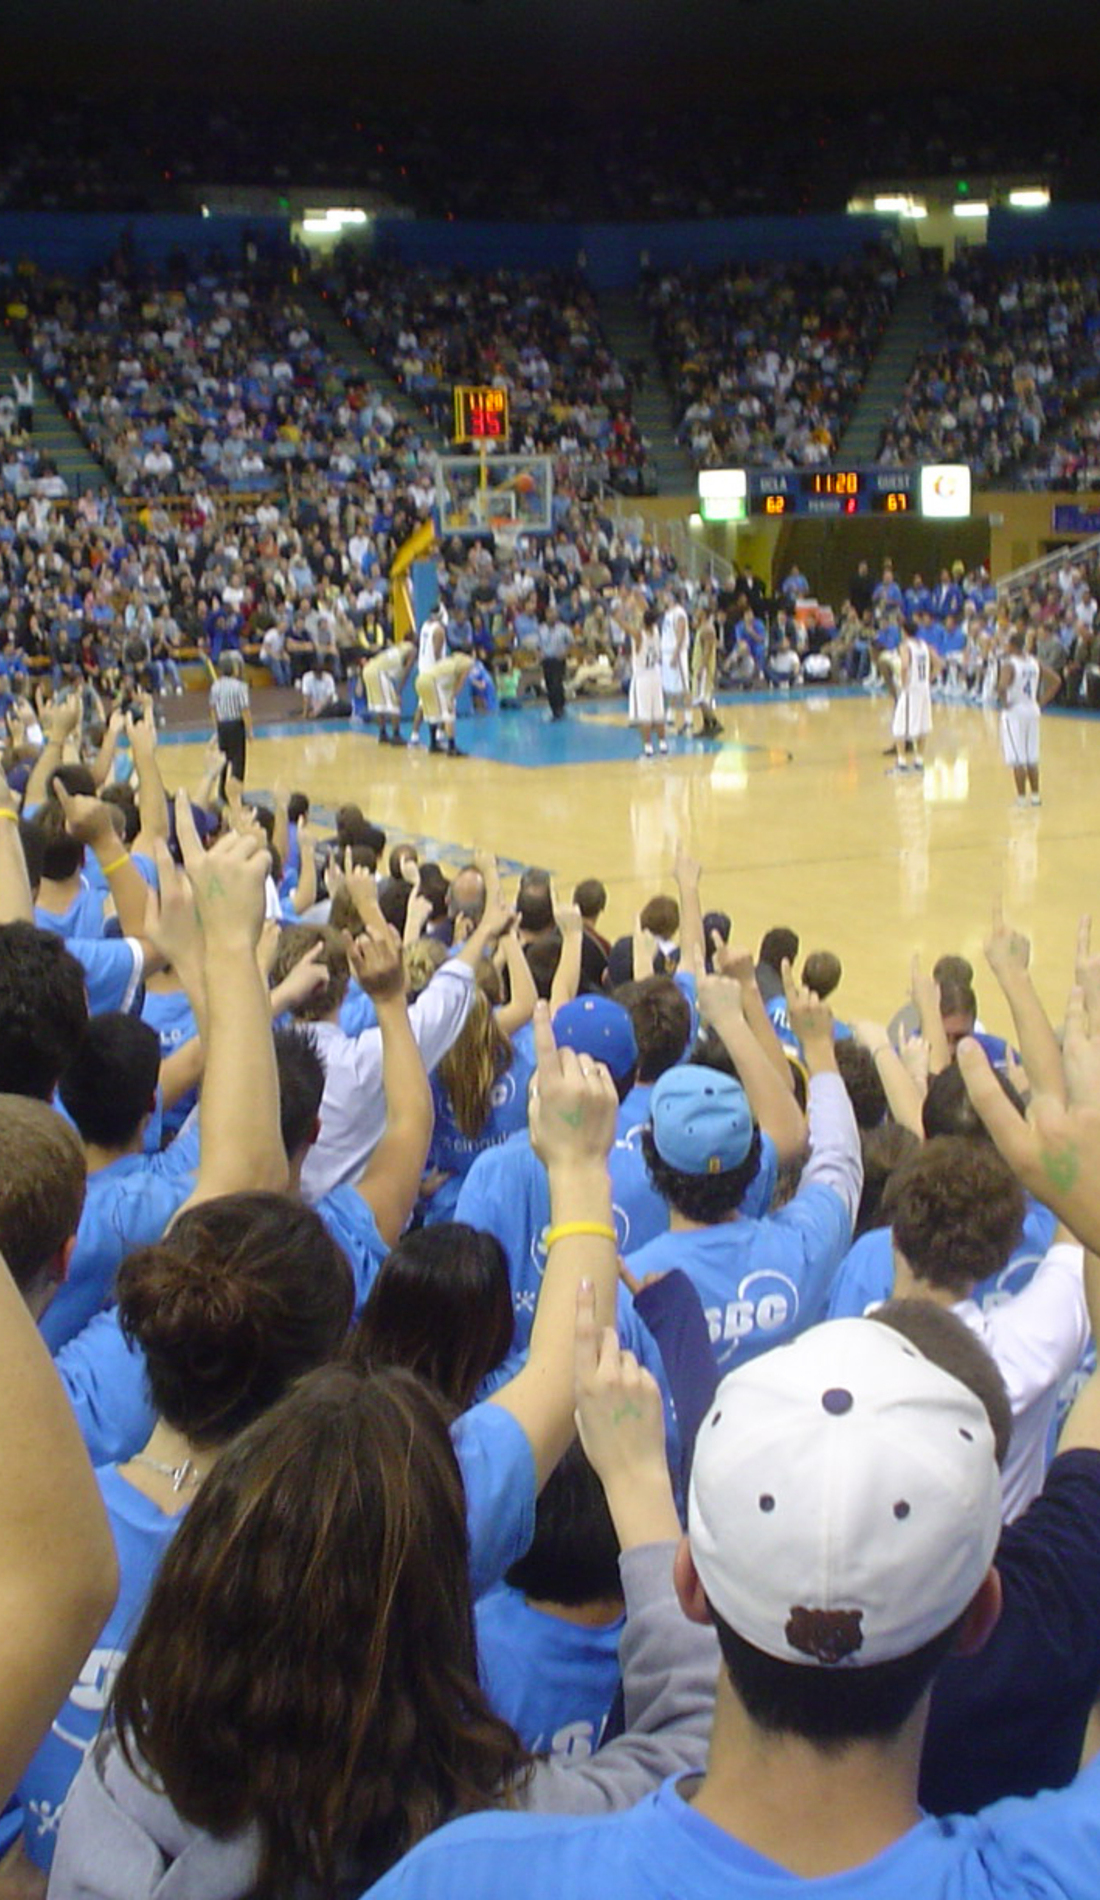 A UCLA Bruins Basketball live event